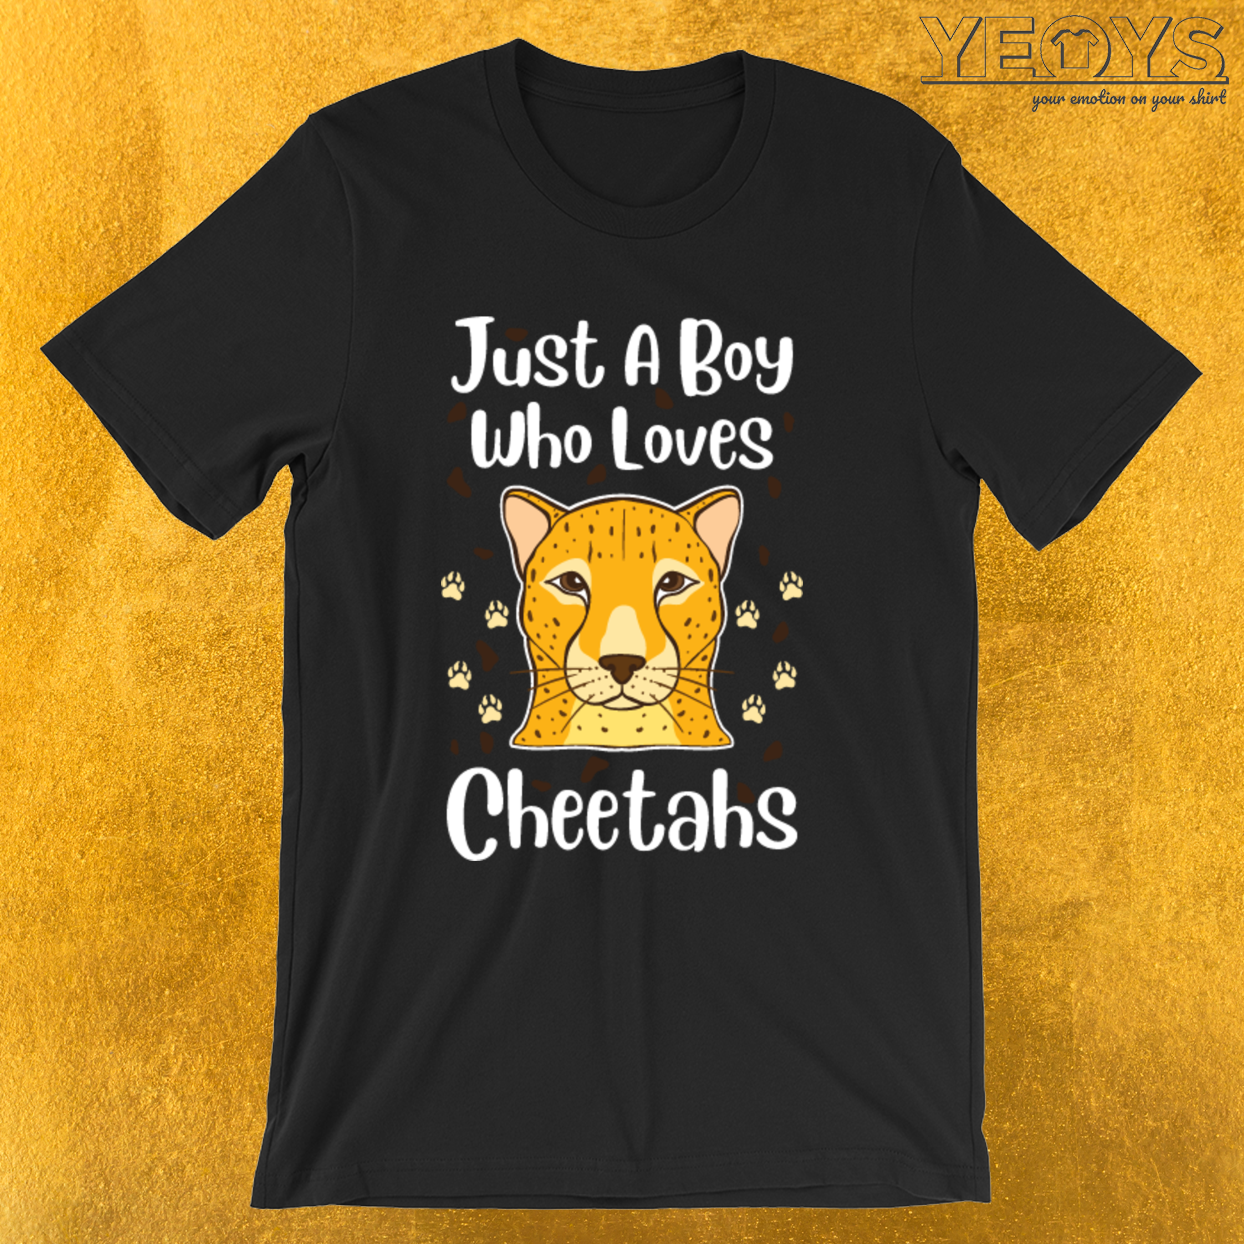 Just A Boy Who Loves Cheetahs – Cheetah Tee